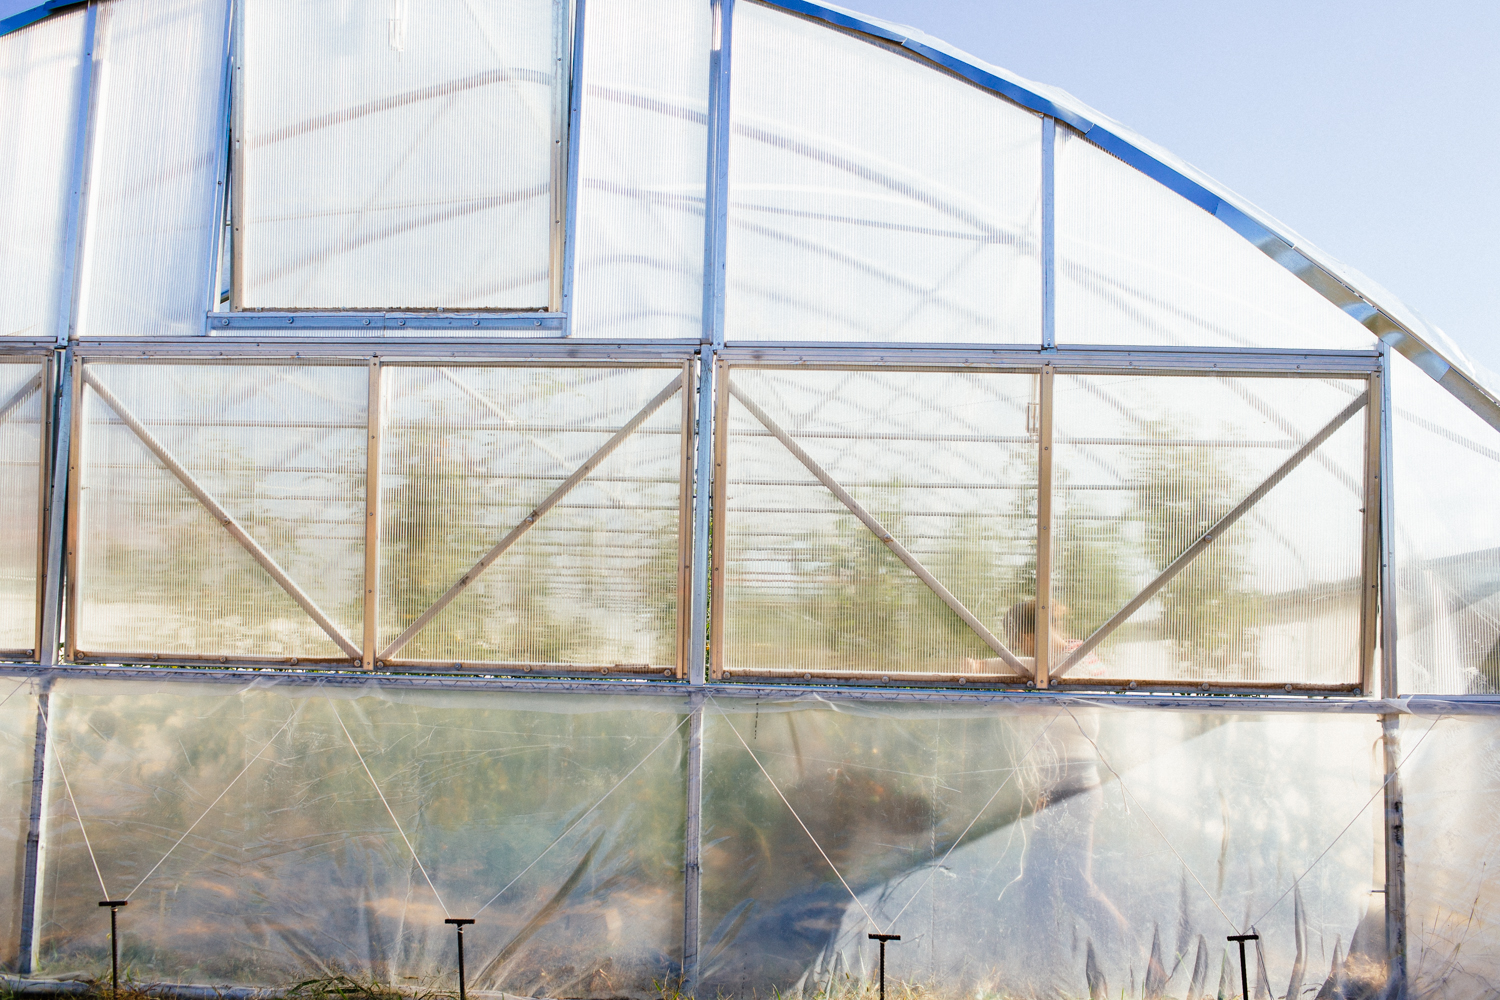 A worker at Doublebrook Farms maintaining a part of the moving greenhouse.